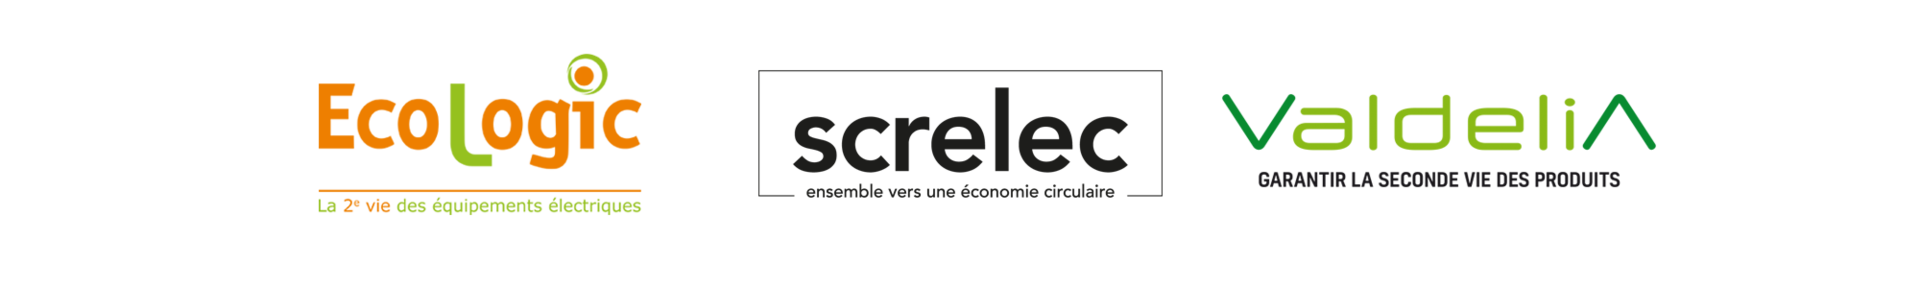 ECOLOGIC - SCRELEC - VALDELIA